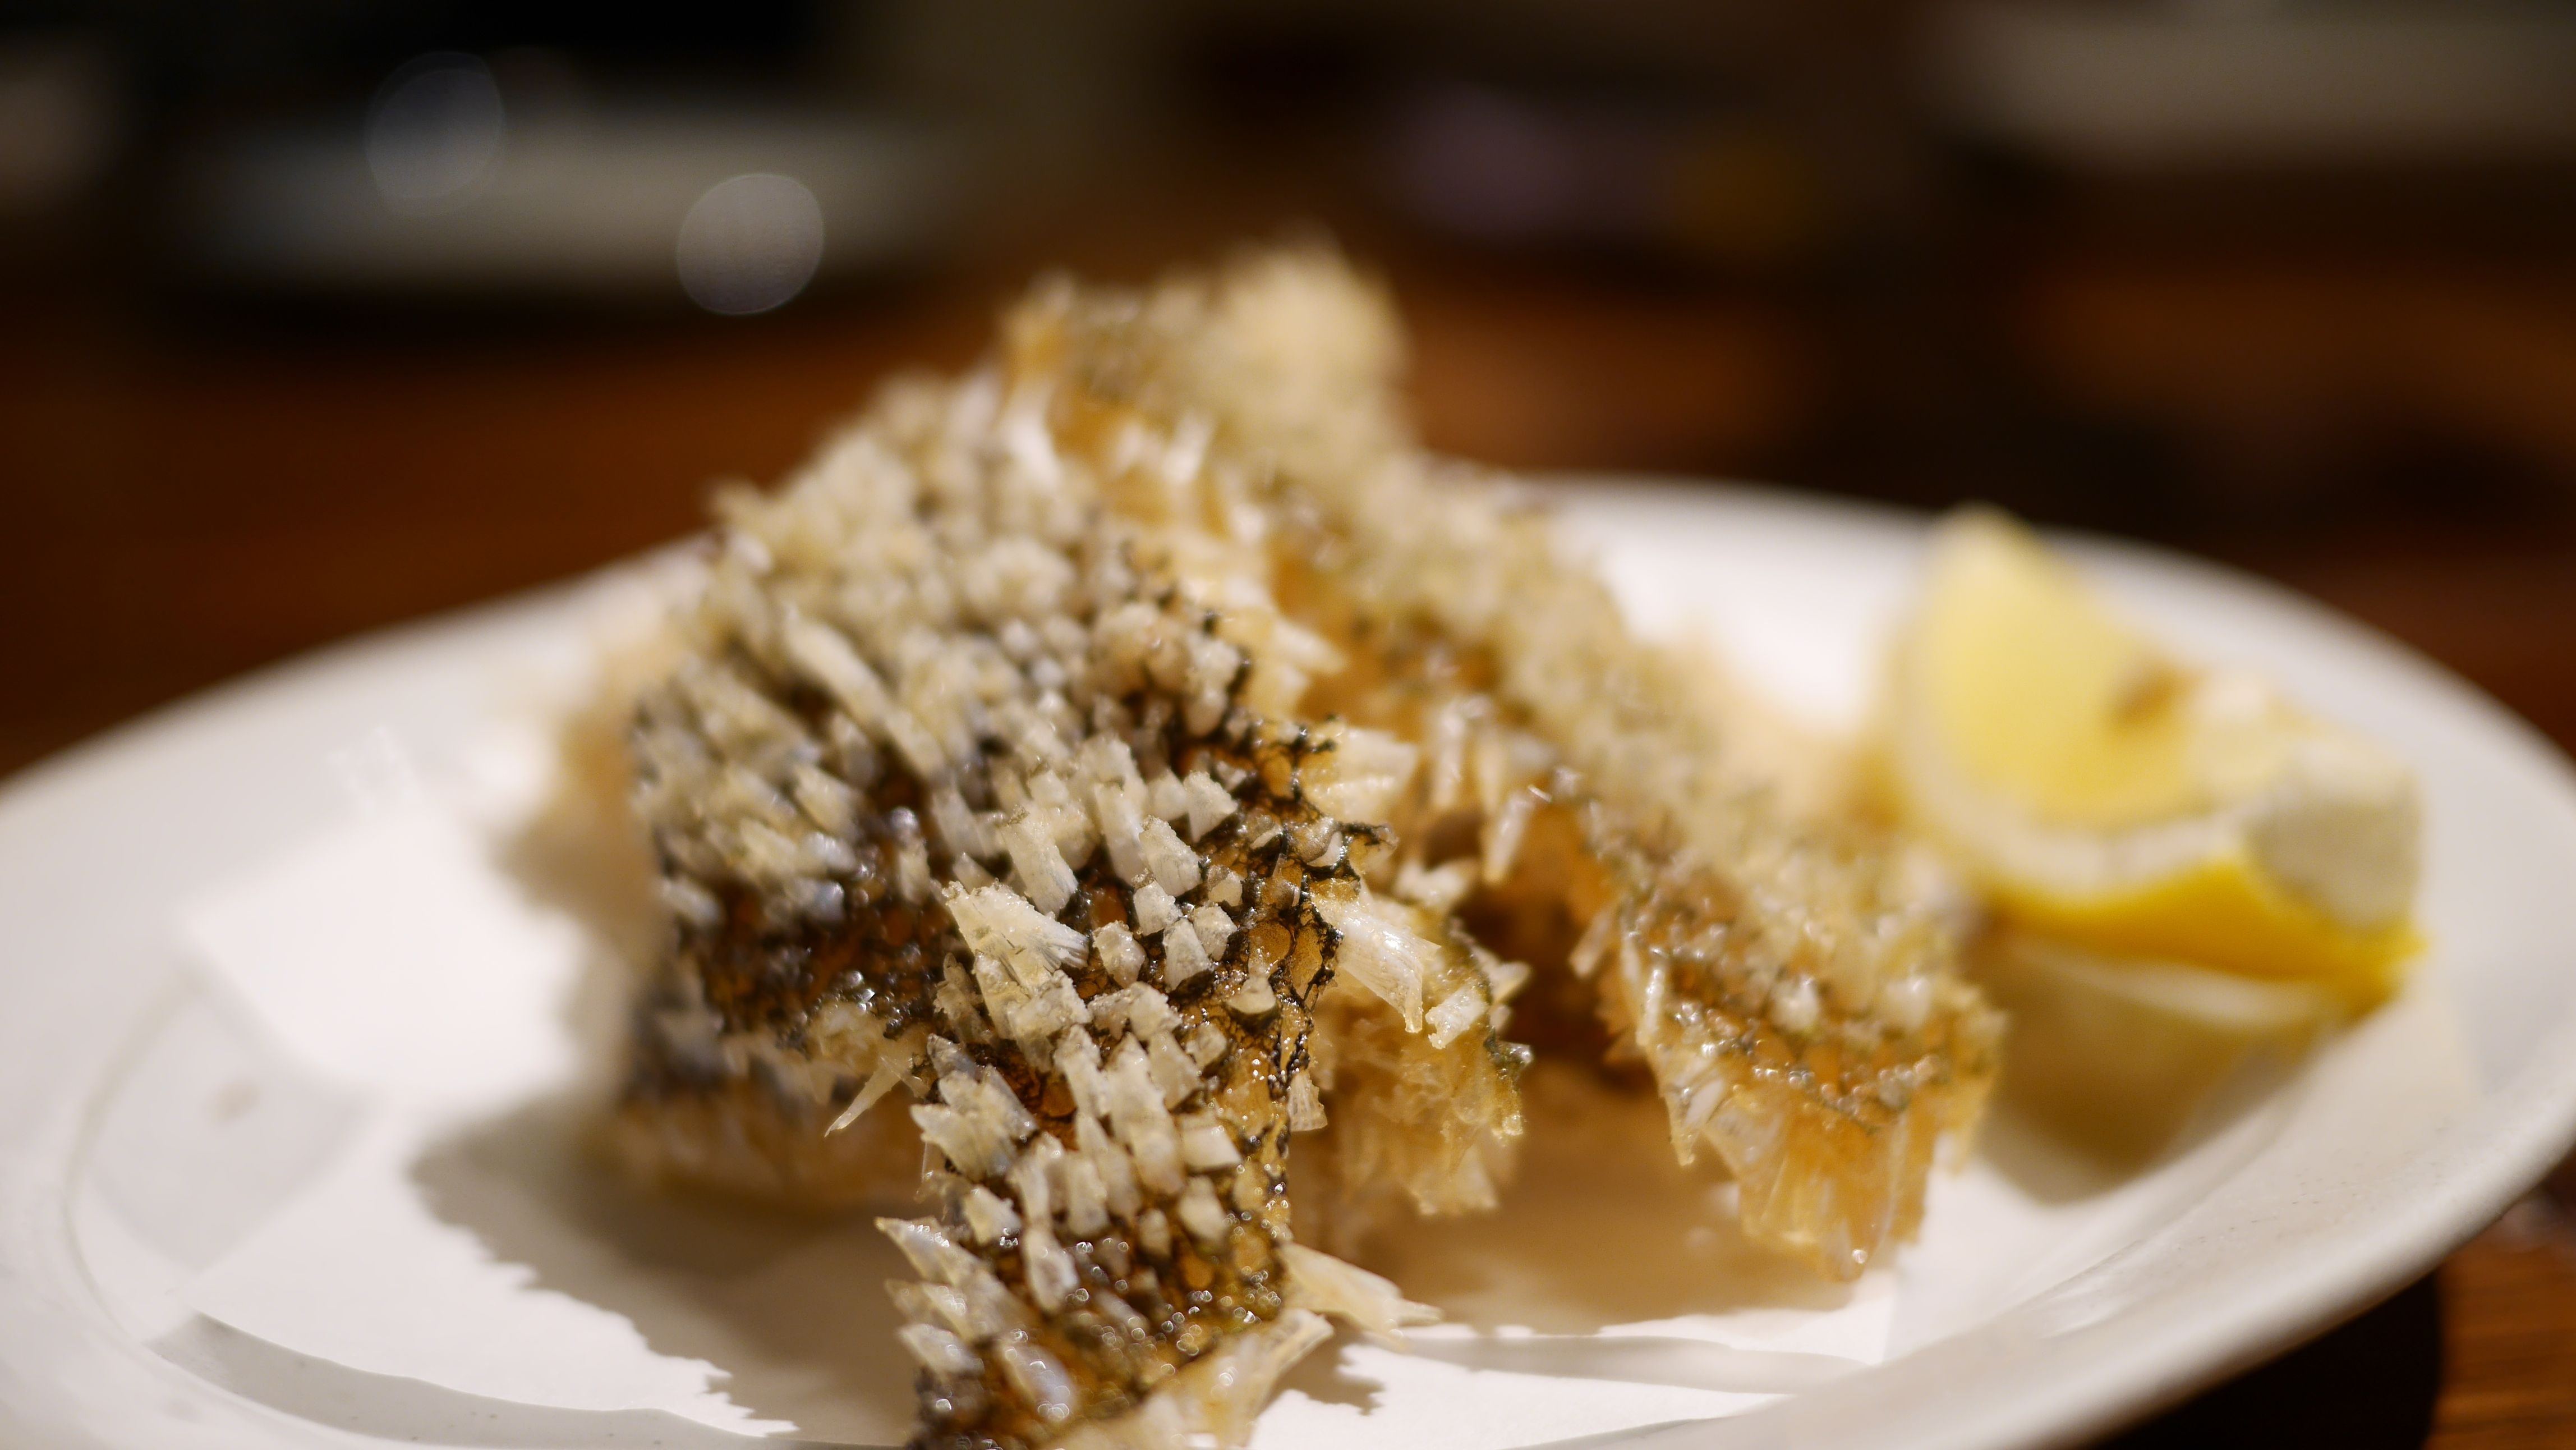 Deep fried fish skin with scales on | Japanese Dishes